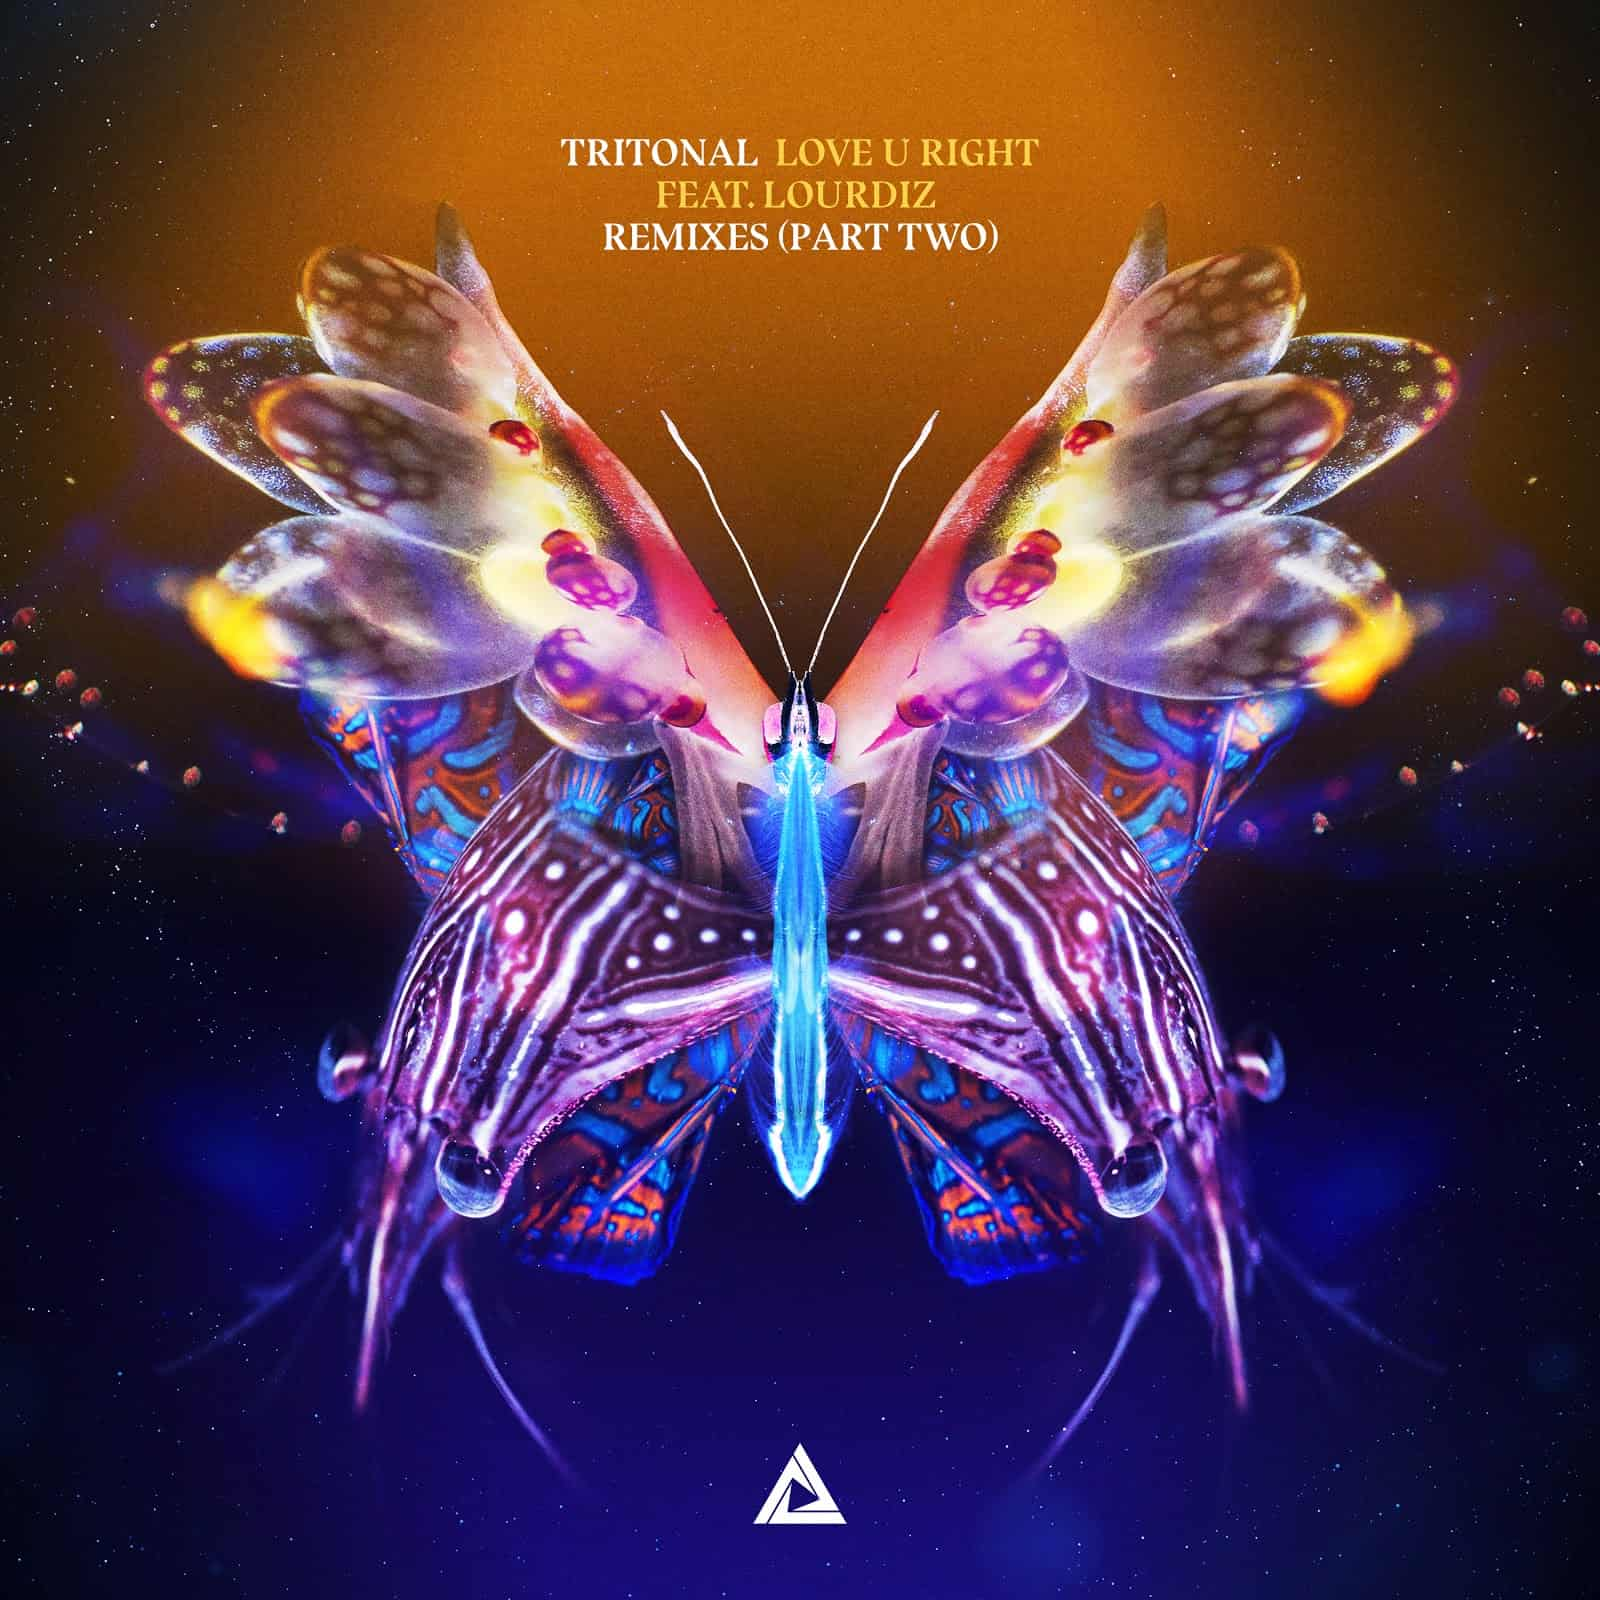 """Tritonal releases """"Love U Right (Remixes Part 2)"""" package"""